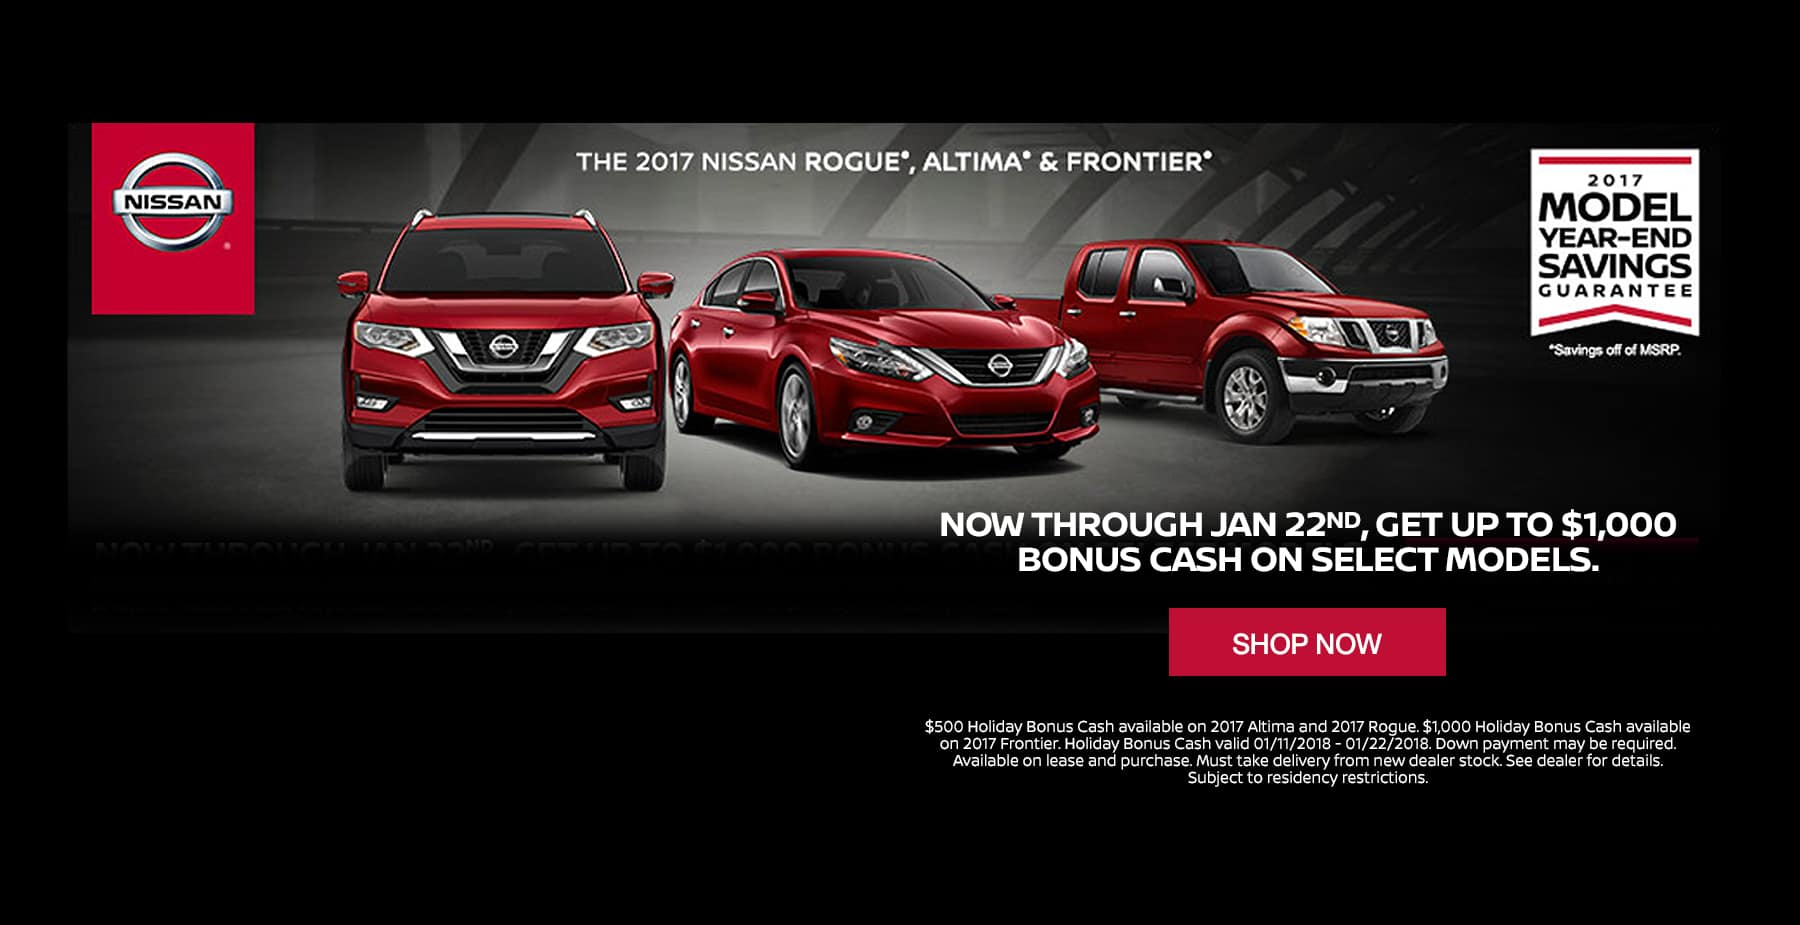 Get up to $1,000 Bonus Cash on Select 2017 Models at Star Nissan!